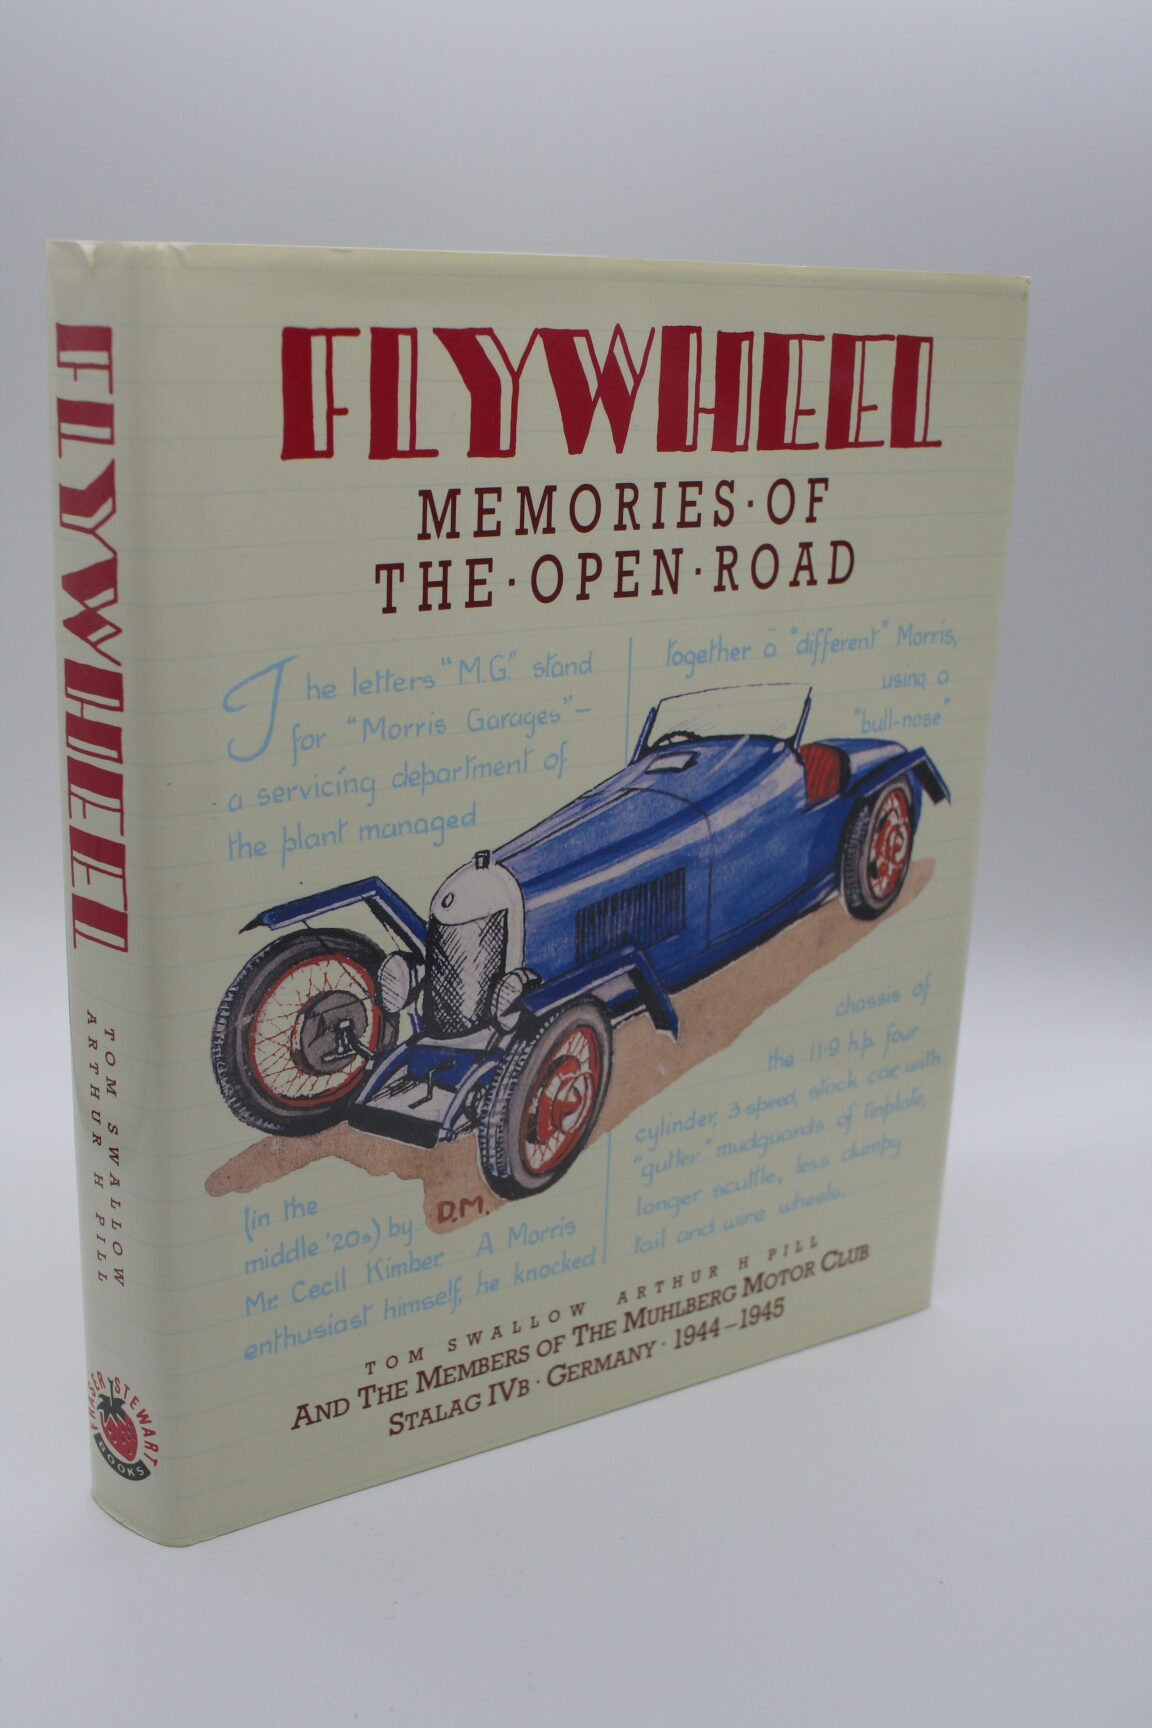 Flywheel: Memories of the Open Road - Tom Swallow and Arthur H Pill